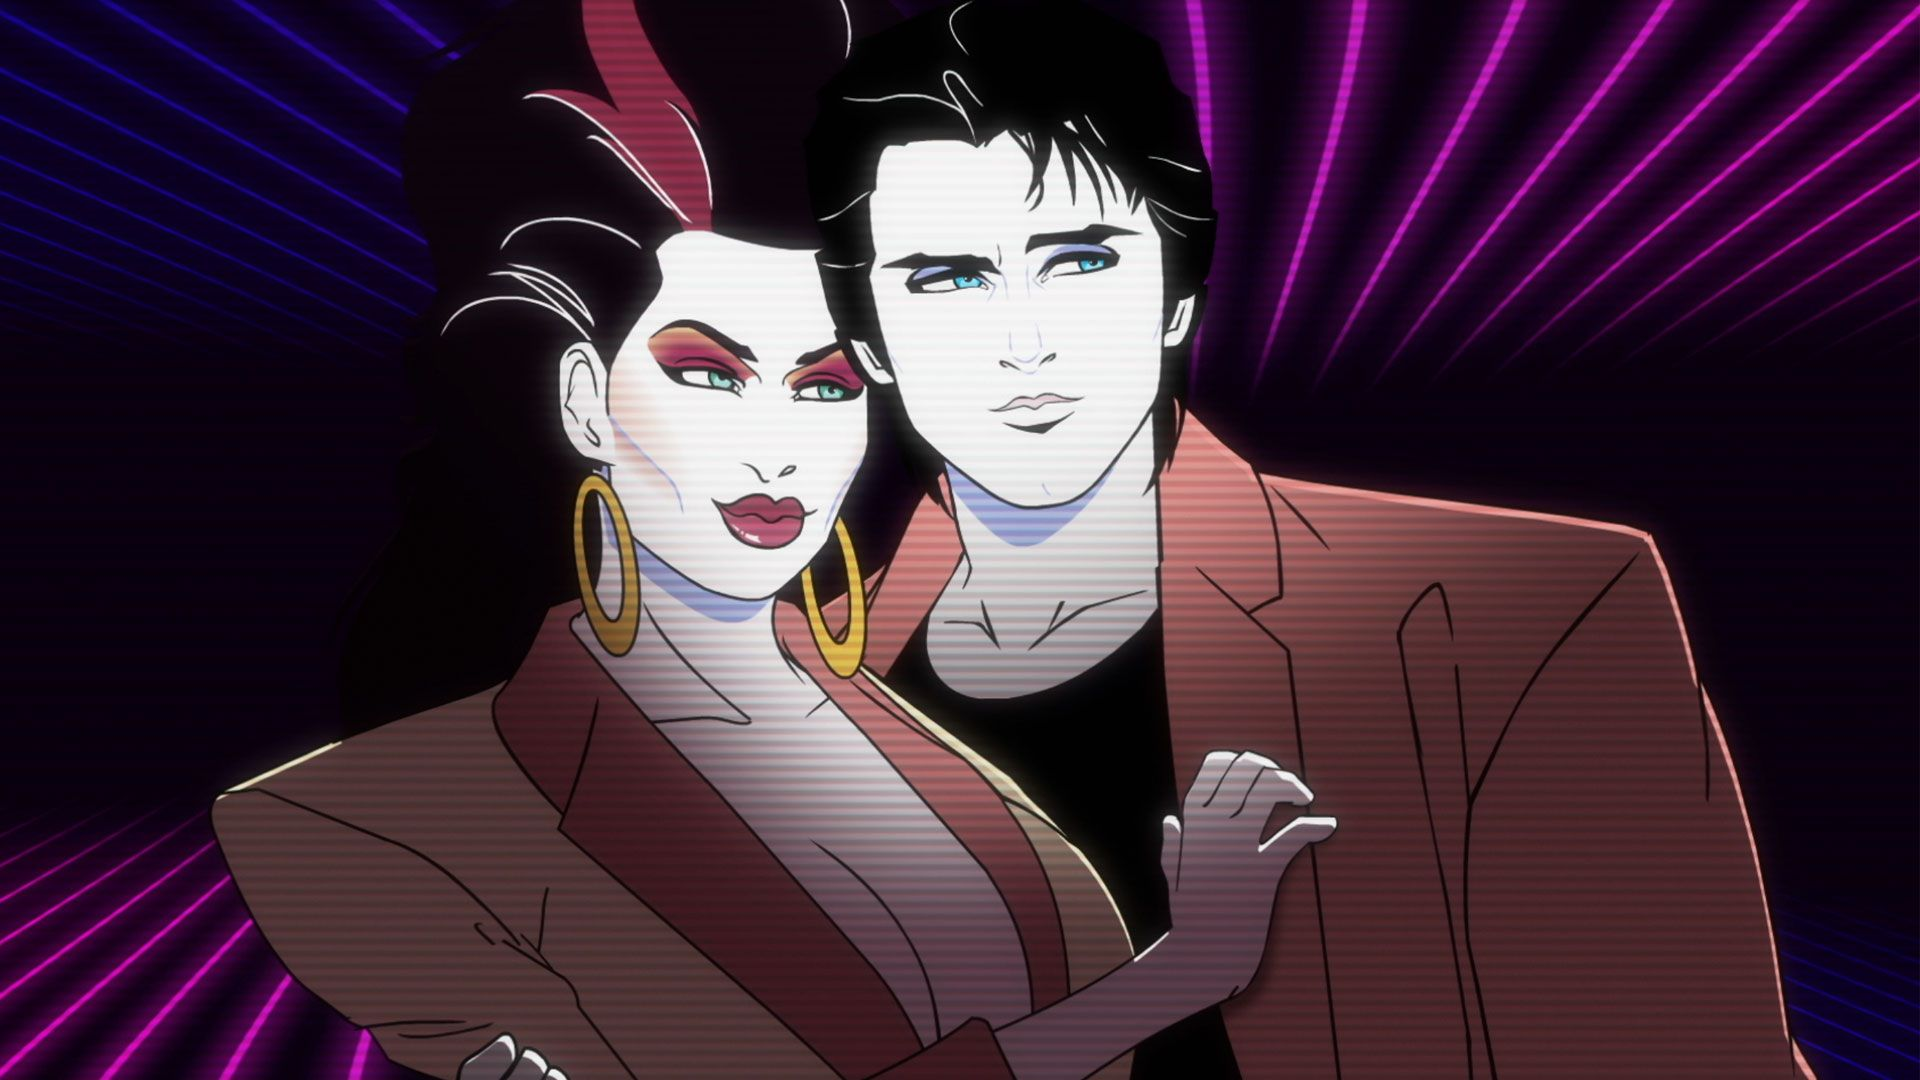 Moonbeam City's Hottest New Couple-Moonbeam City - Video Clip ...